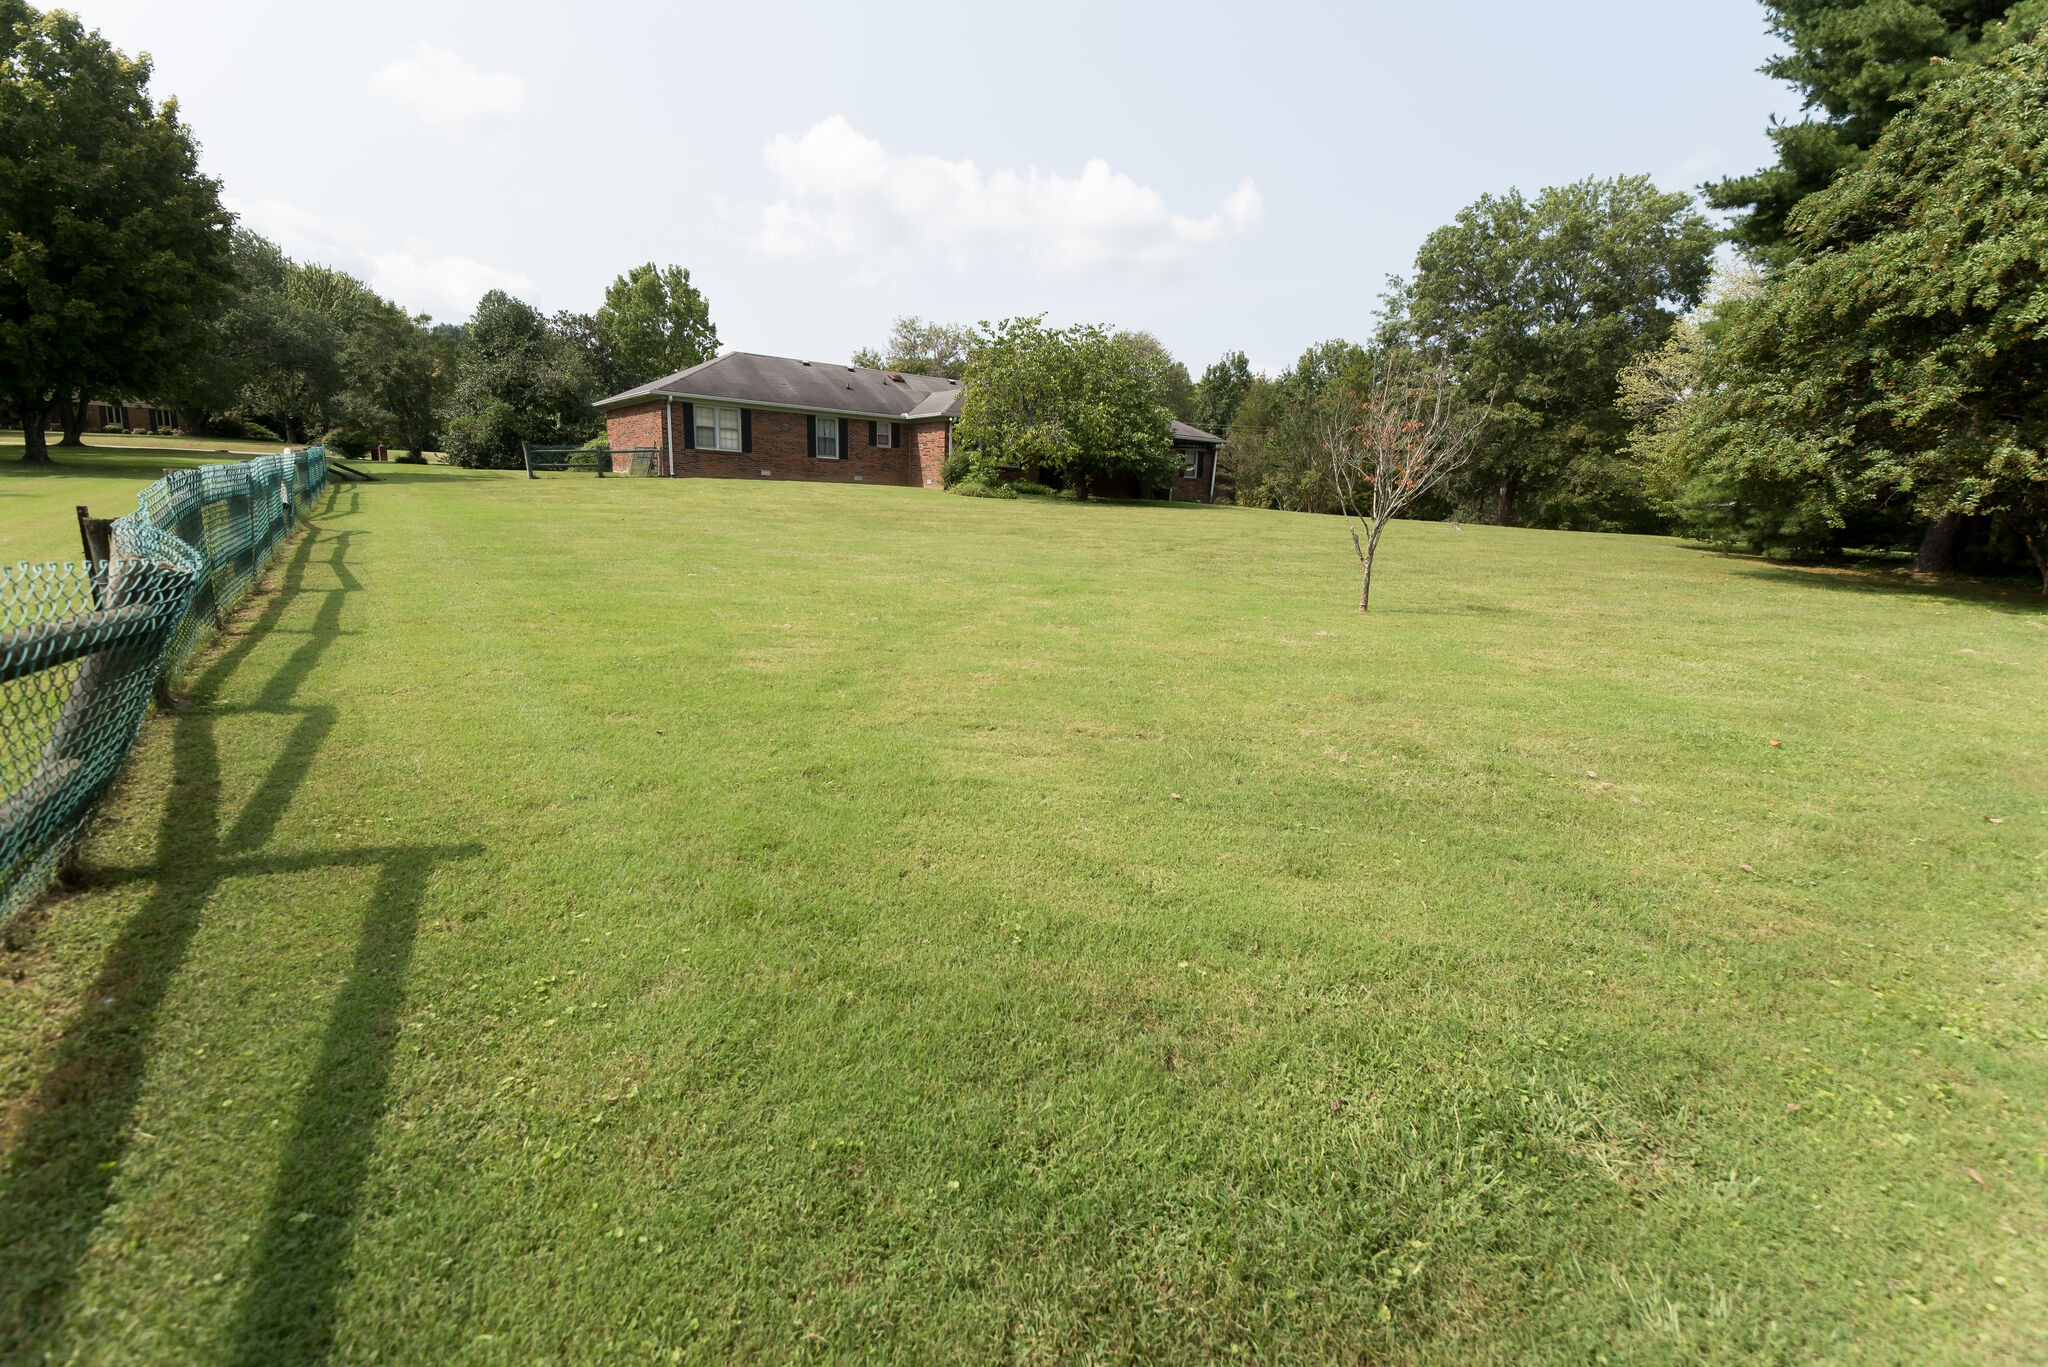 Wonderful opportunity for Grassland schools, easy Nashville access, 1.2ac. NO HOA! Home has never been listed! Sold AS IS.  Great one level living.  Beautiful lot...home has great spaces.  Needs updating.  Someone could go all Joanna Gaines on this one!!  Lg bonus room just off kitchen, cozy den with stone fireplace.  A must see.  Easy to show.